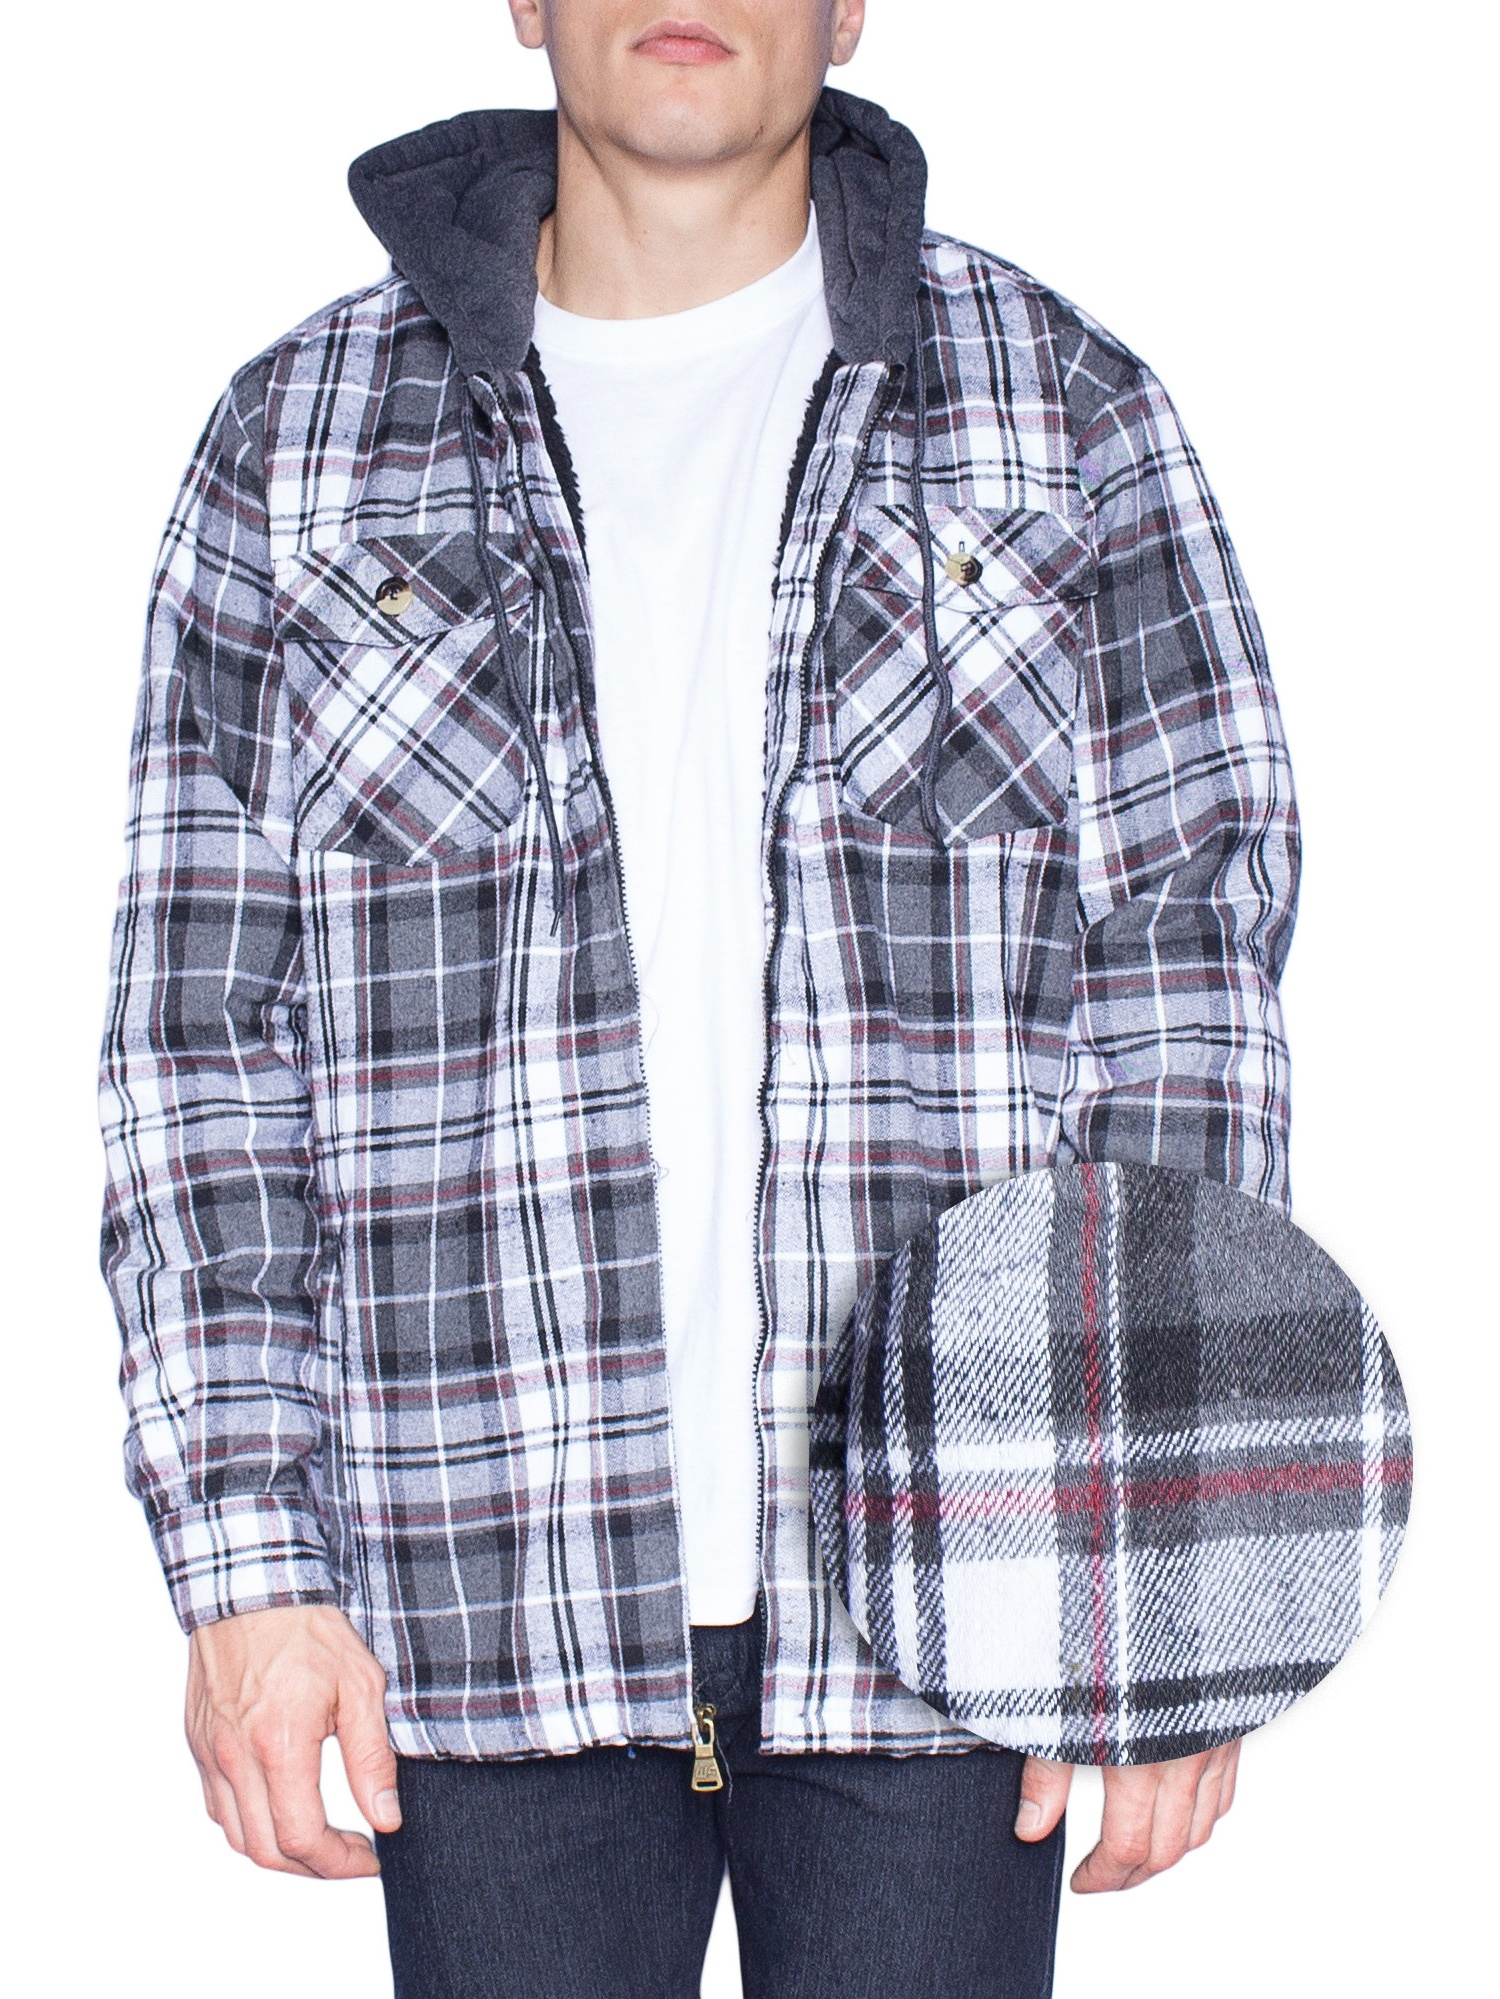 Hoodie Flannel Fleece Jacket For Men Zip Up Big & Tall Lined Sherpa Sweatshirts (XL-Tall, Grey/White)